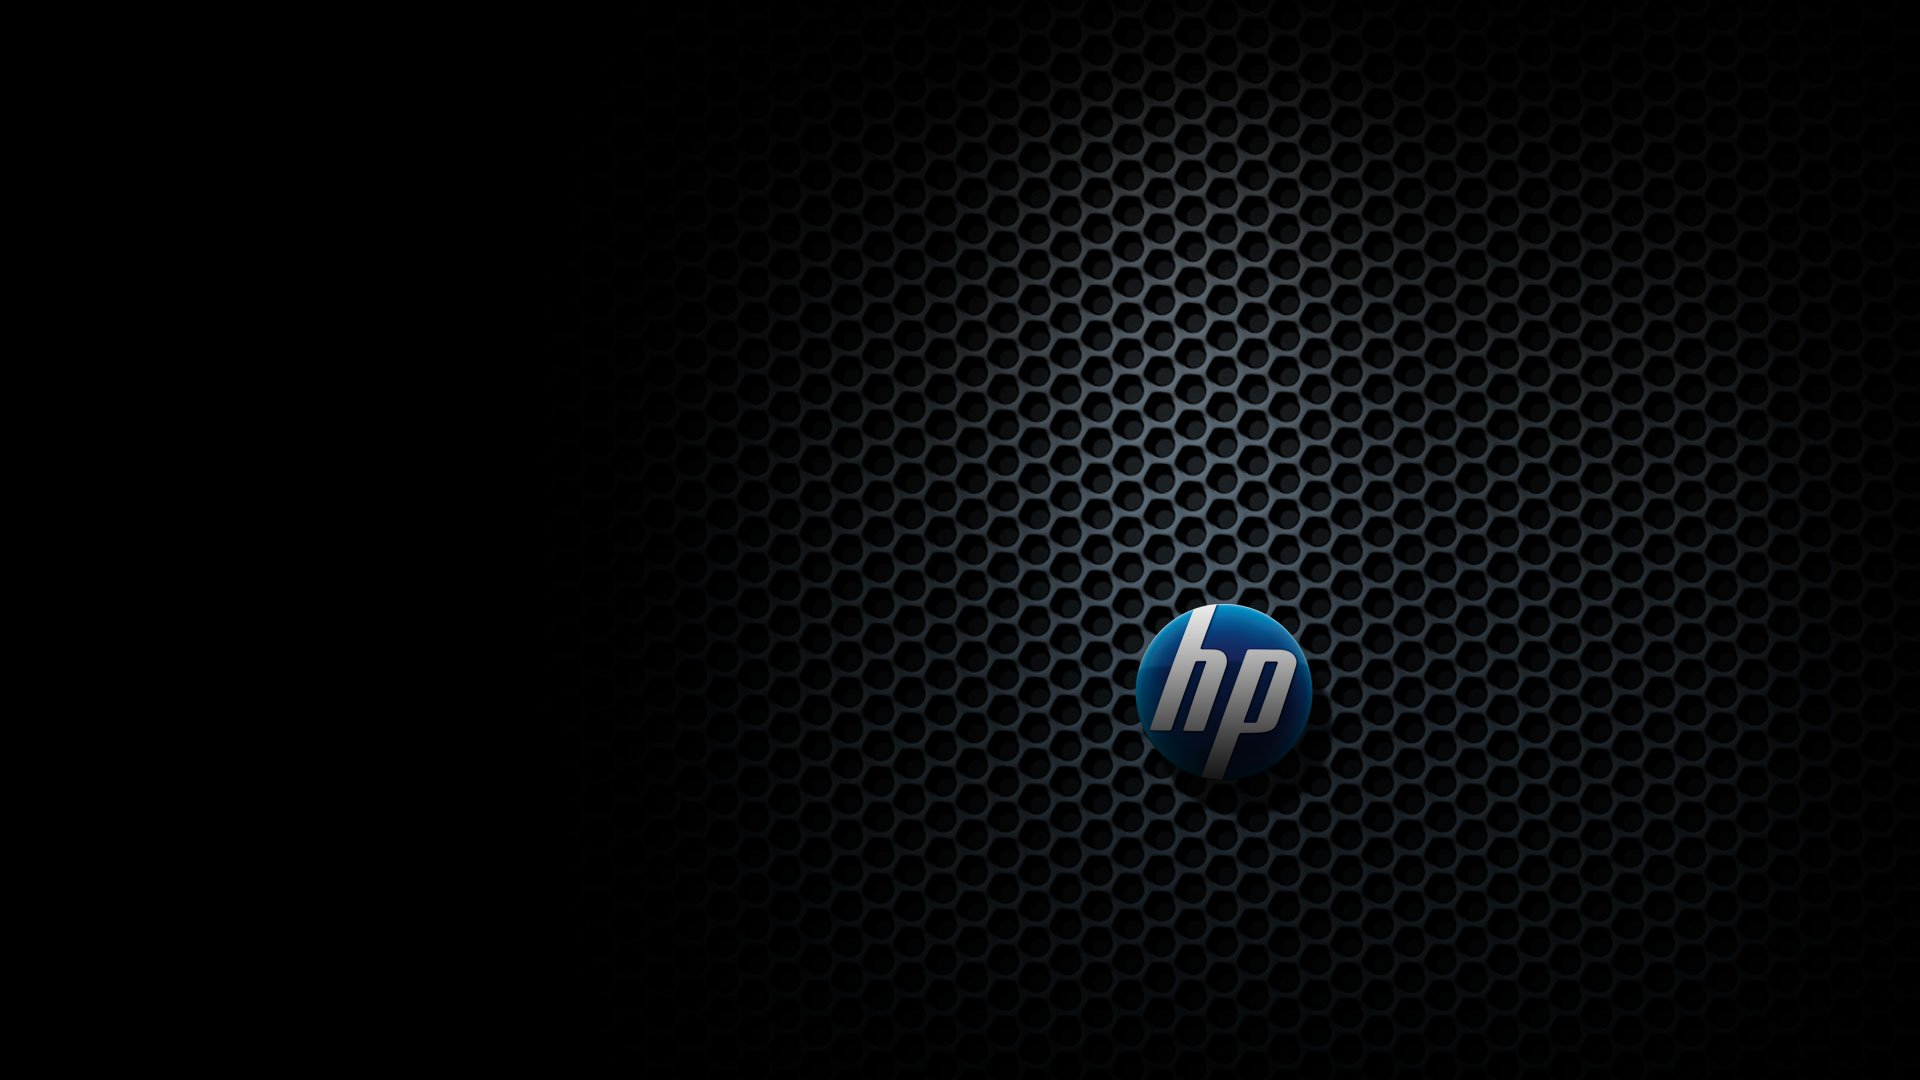 hp wallpapers hp wallpapers hp wallpapers hp photos hp photos 1920x1080